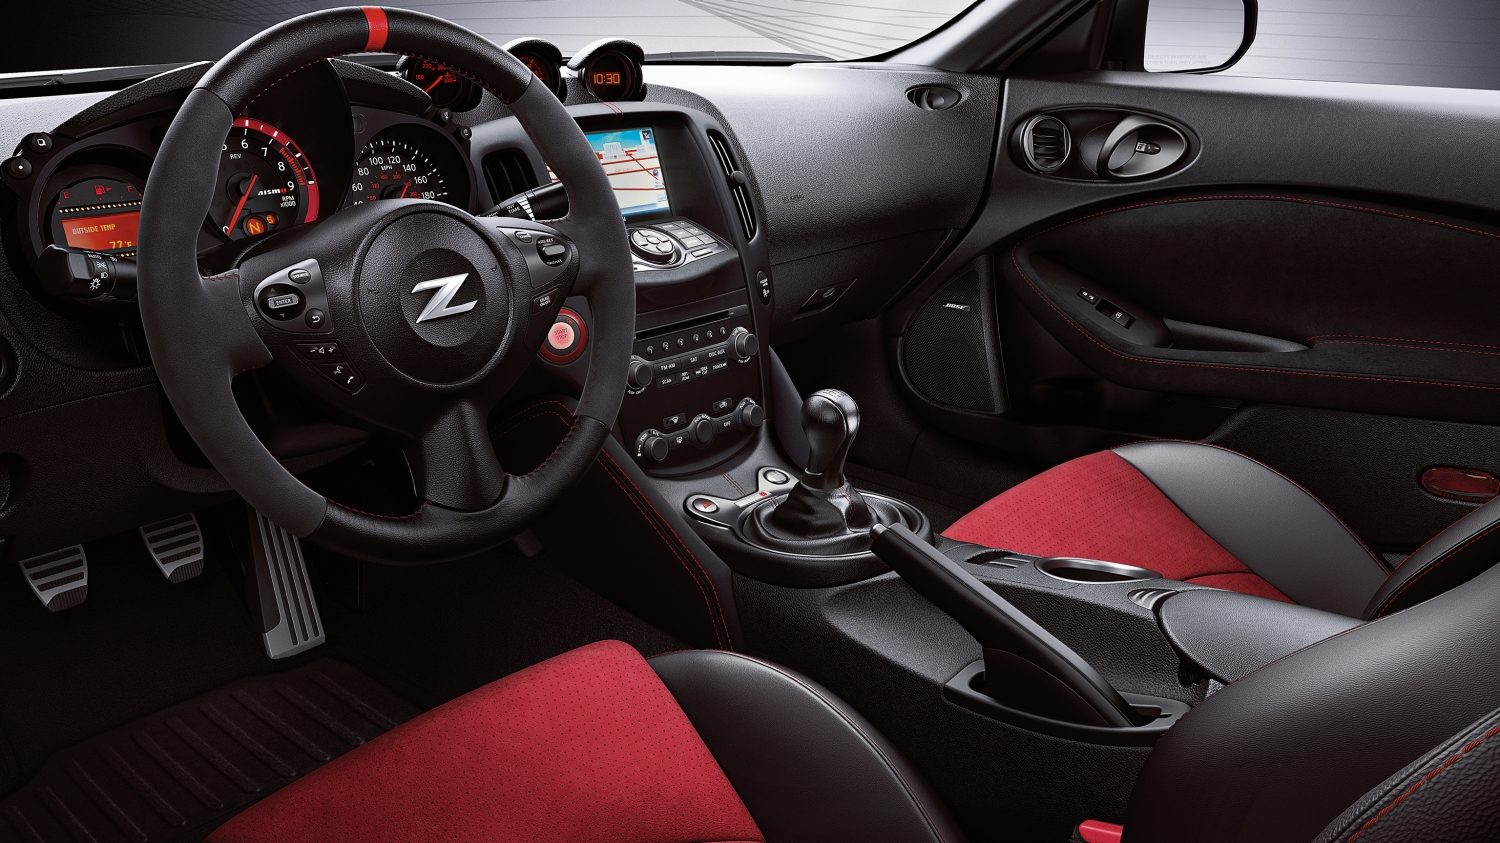 nismo nissan 370z macchine sportive nissan. Black Bedroom Furniture Sets. Home Design Ideas